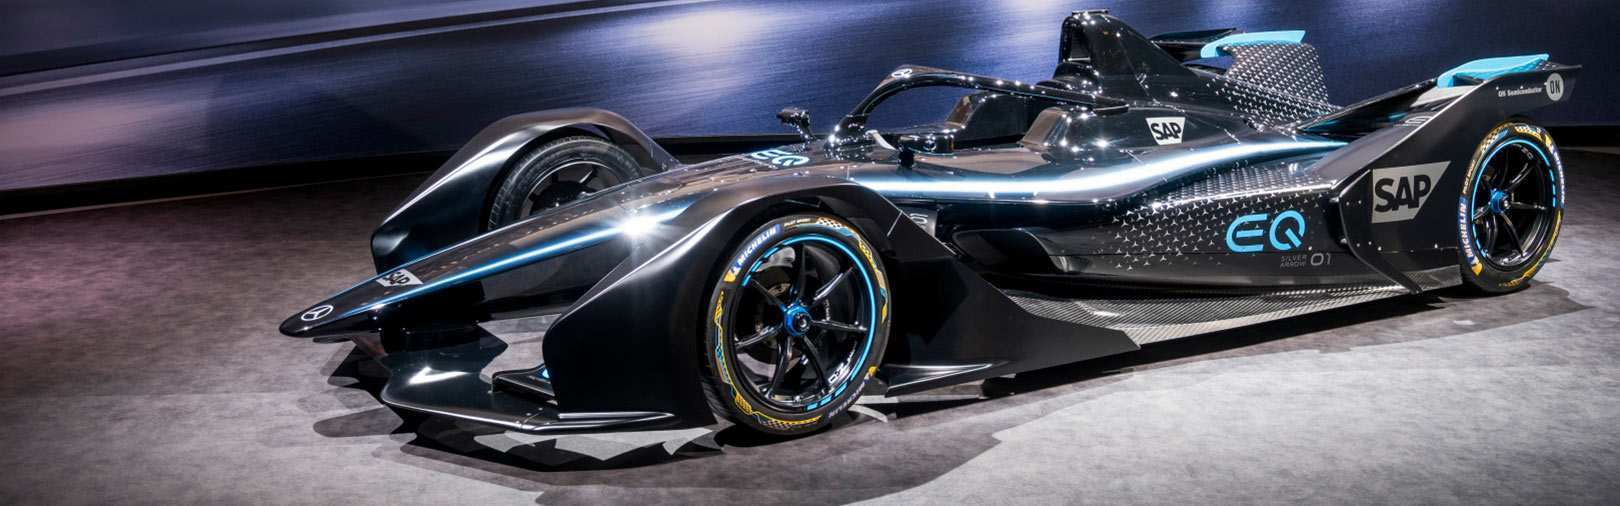 96 Best Mercedes Formula E 2019 Review